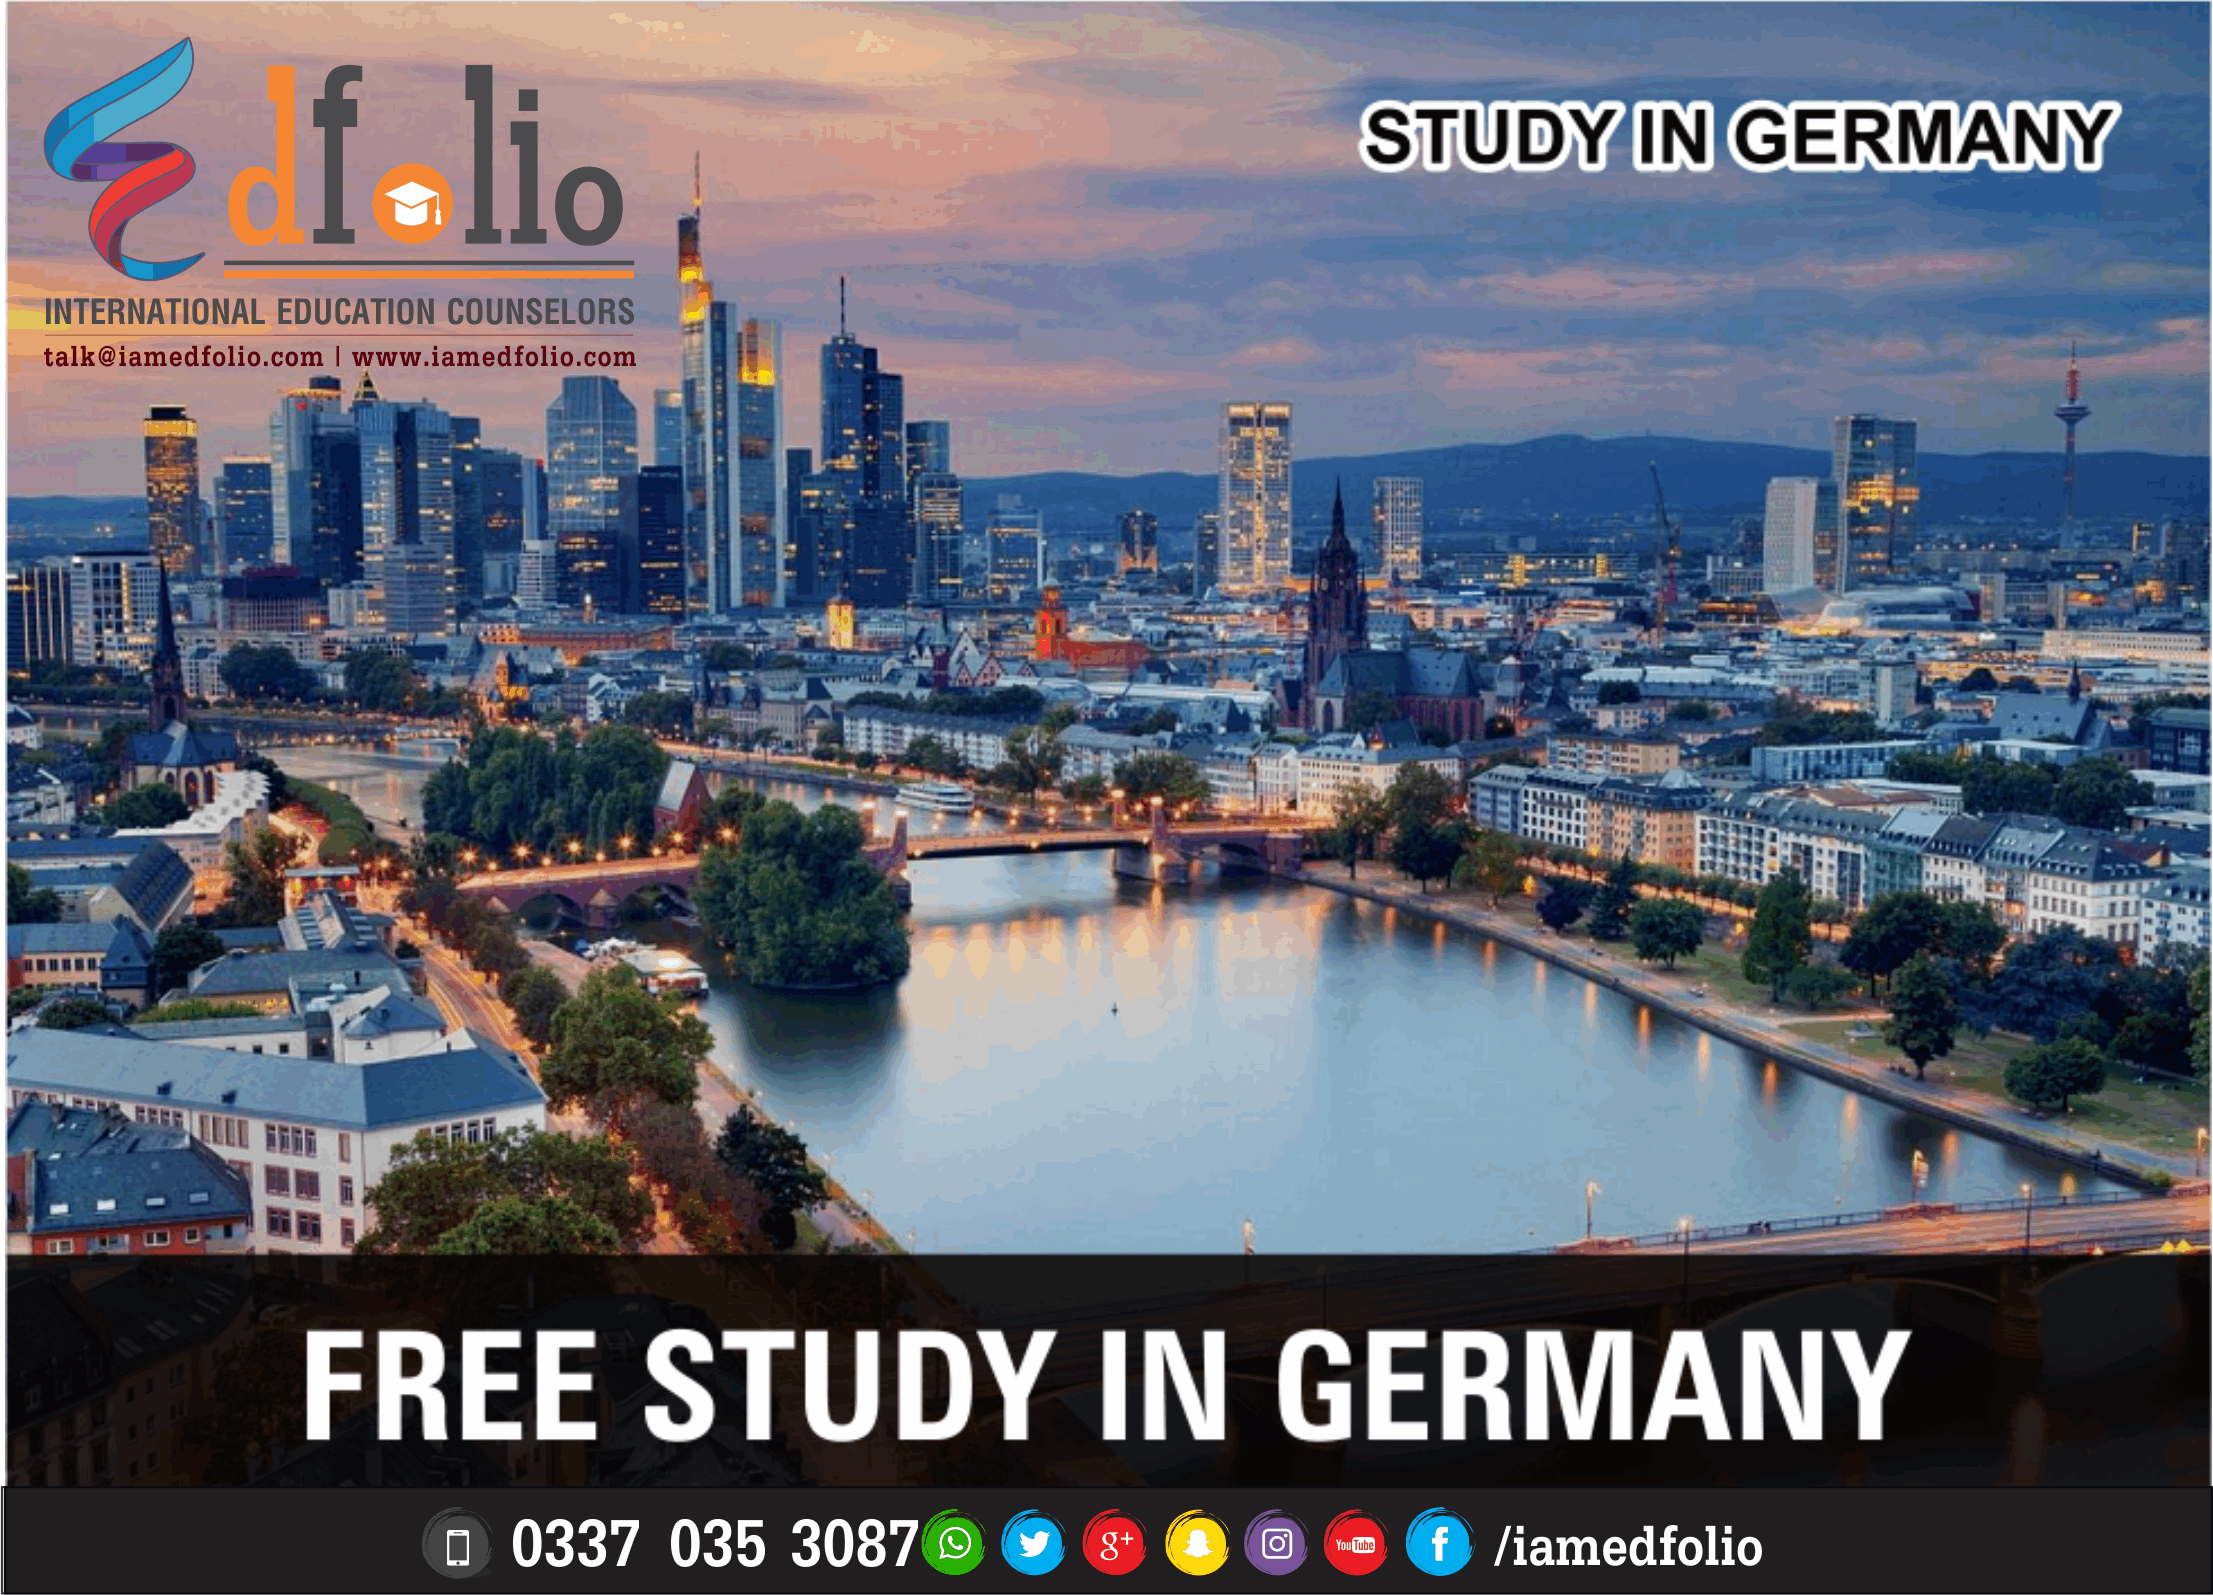 SCHOLARSHIPS IN GERMANY - EdFolio International Education Consultant and Counselors